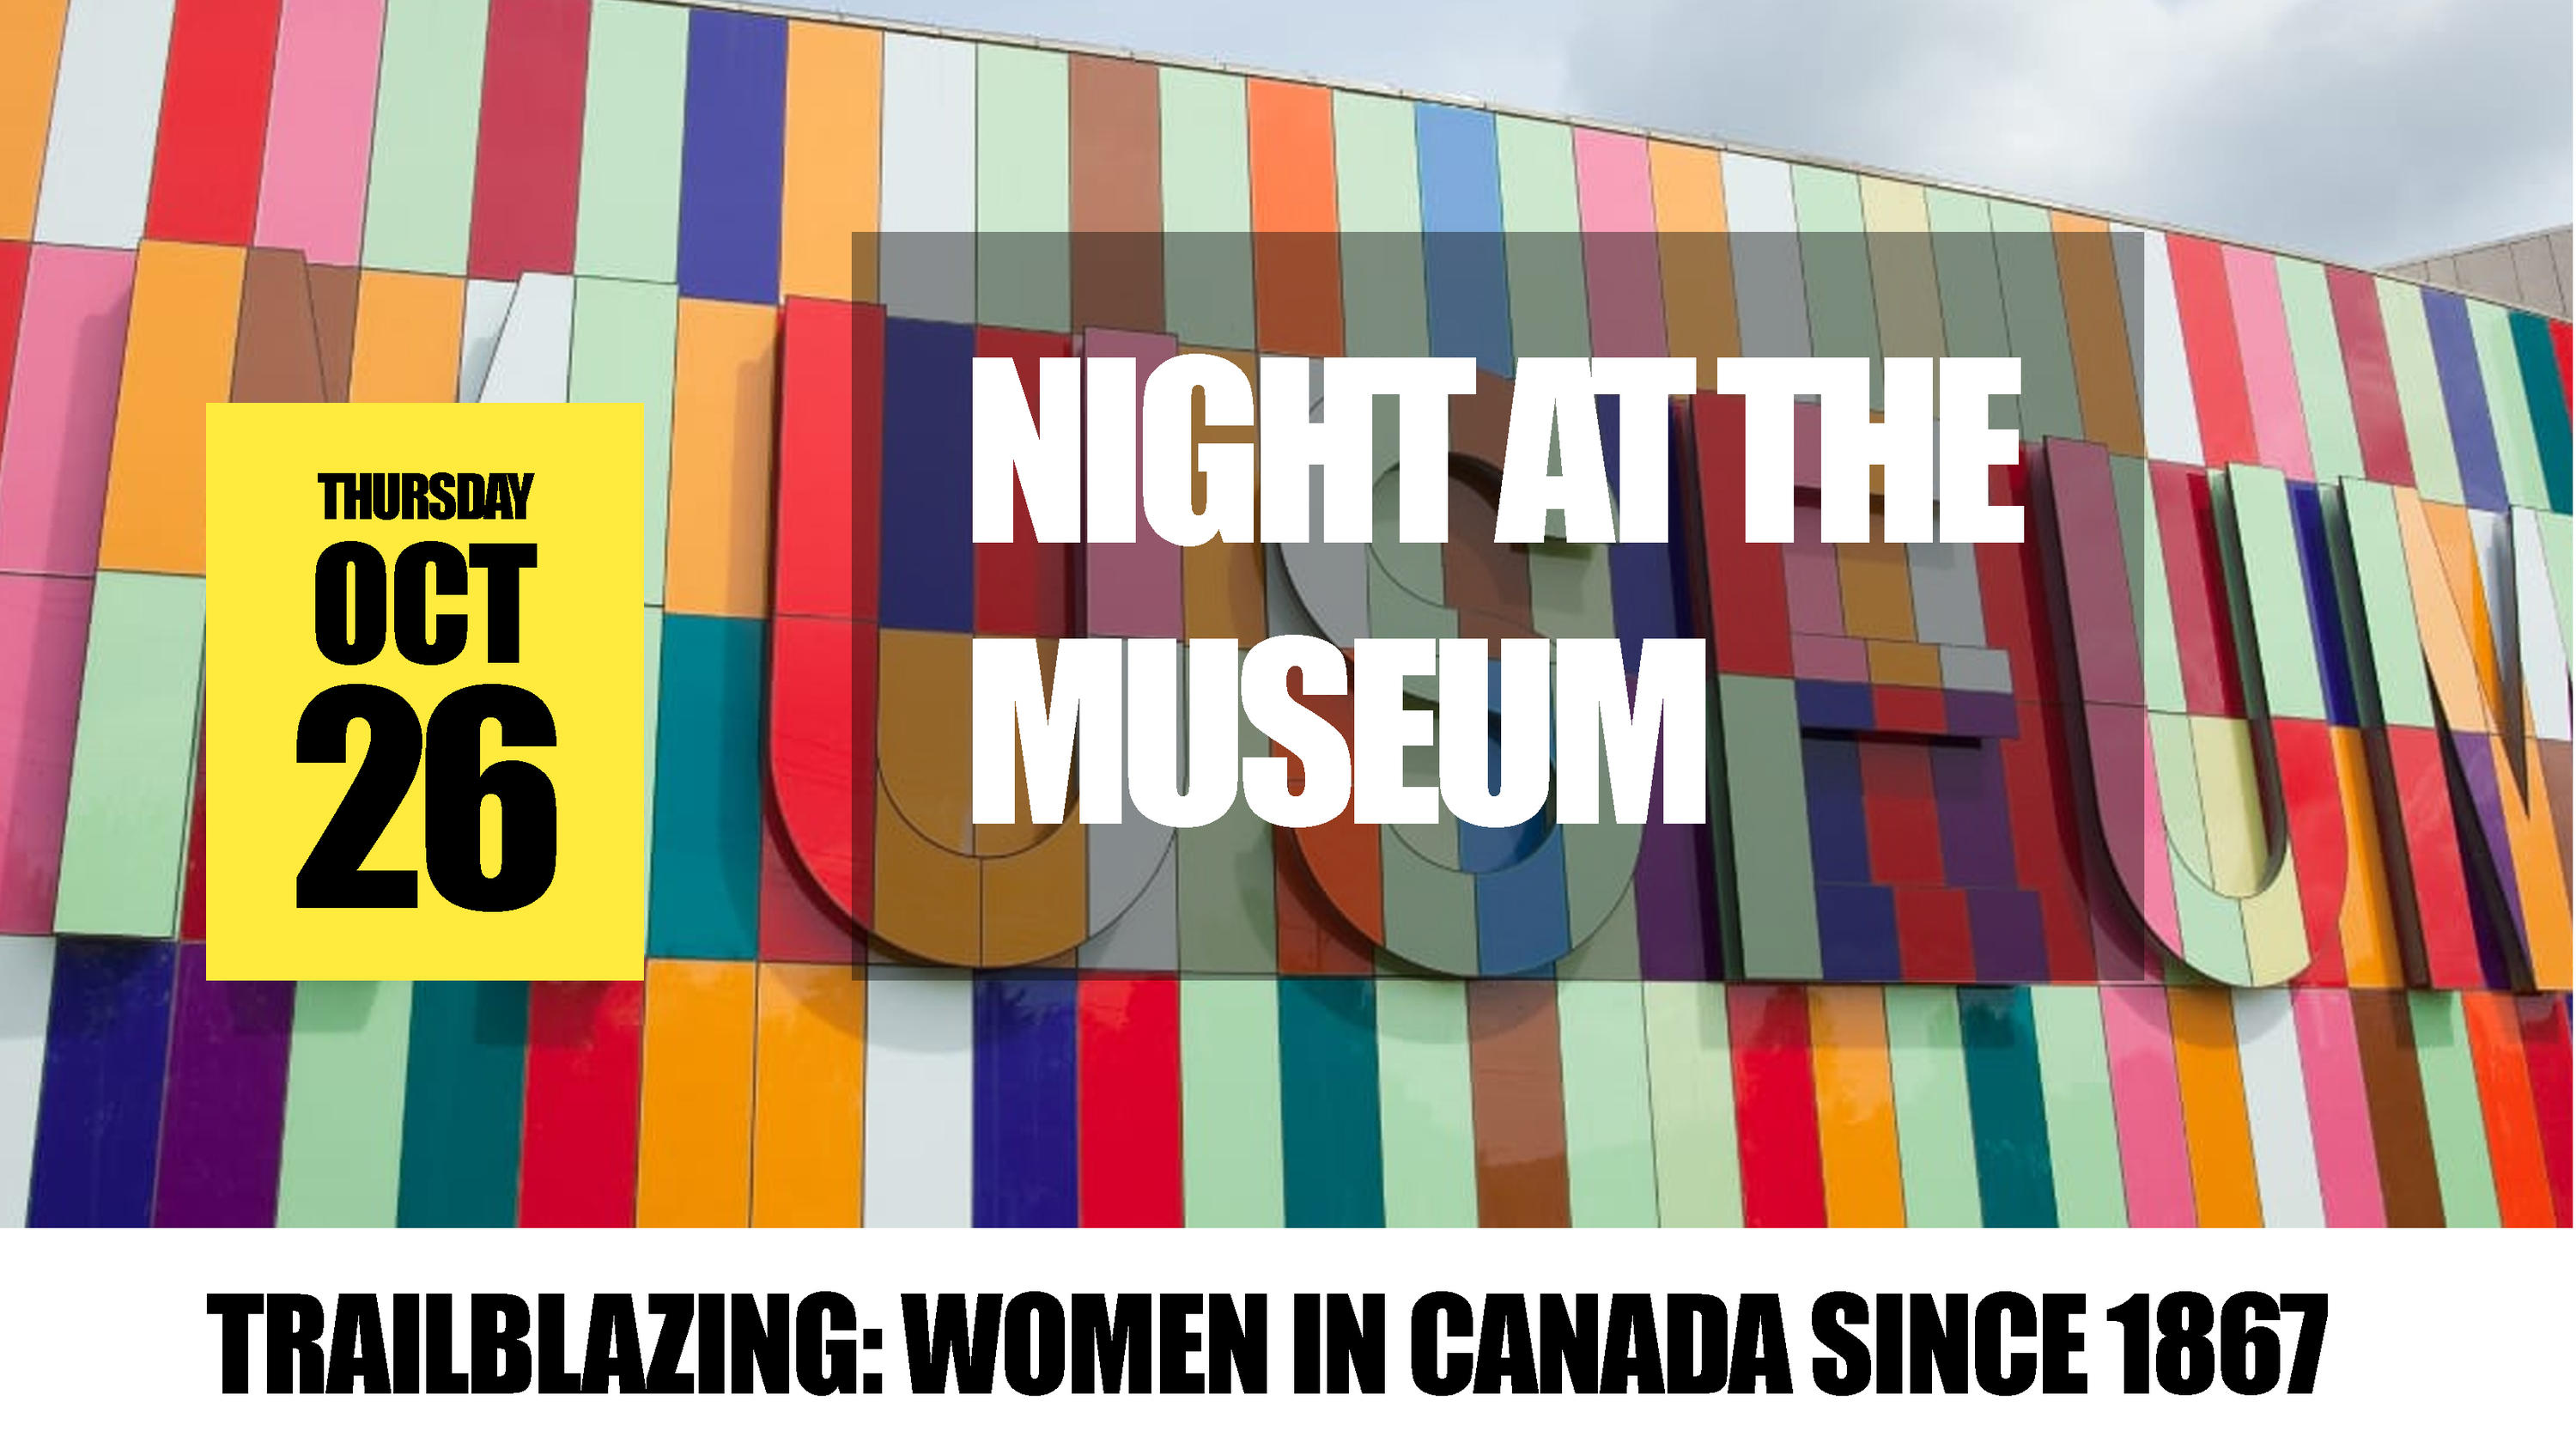 Oct 26h Night at the Museum featuring the exhibit Trailblazing: Women in Canada since 1967.